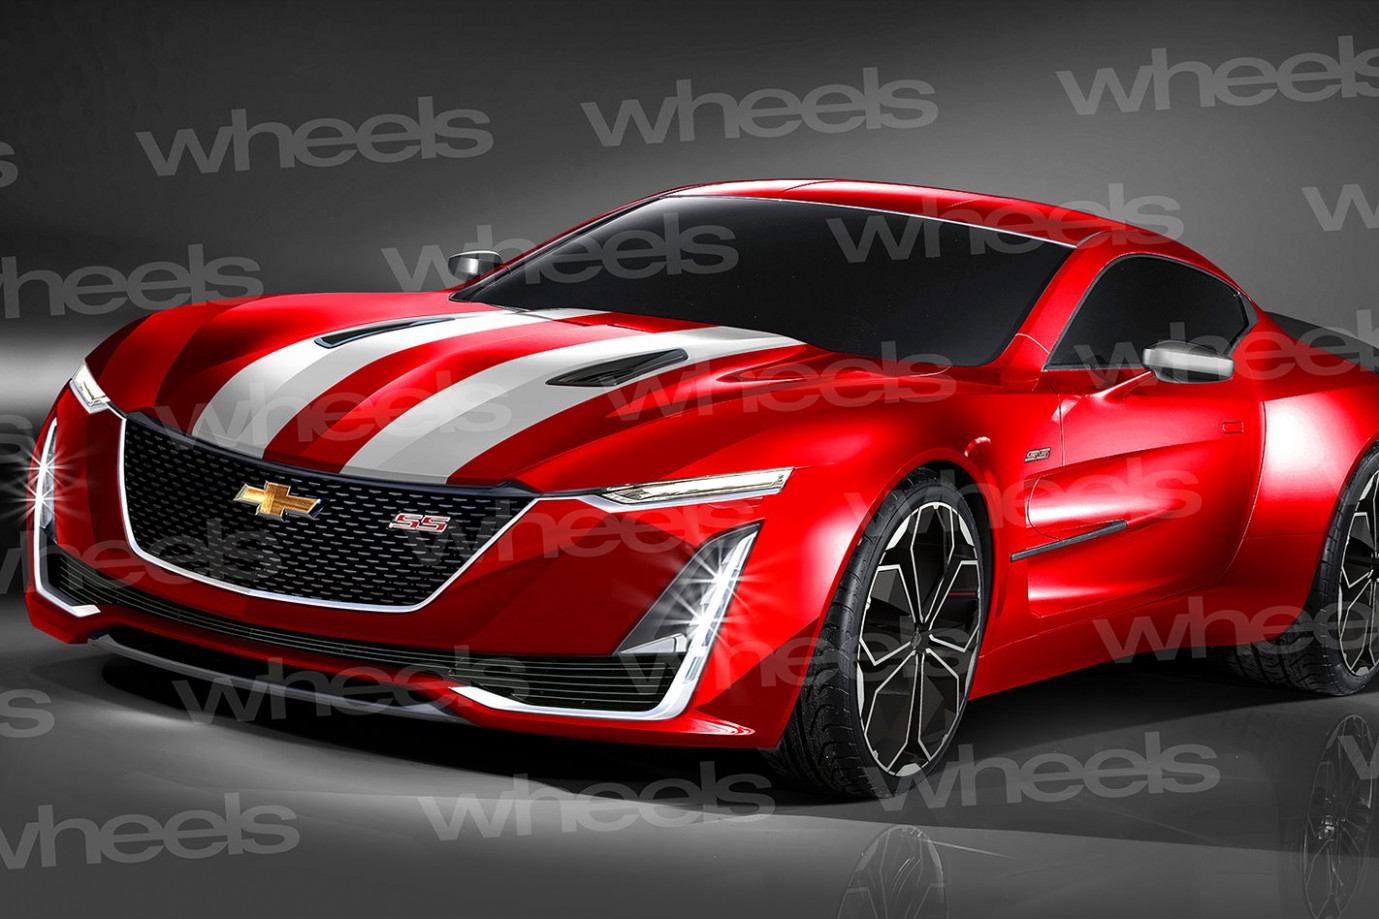 Rumors 2022 Chevrolet Camaro